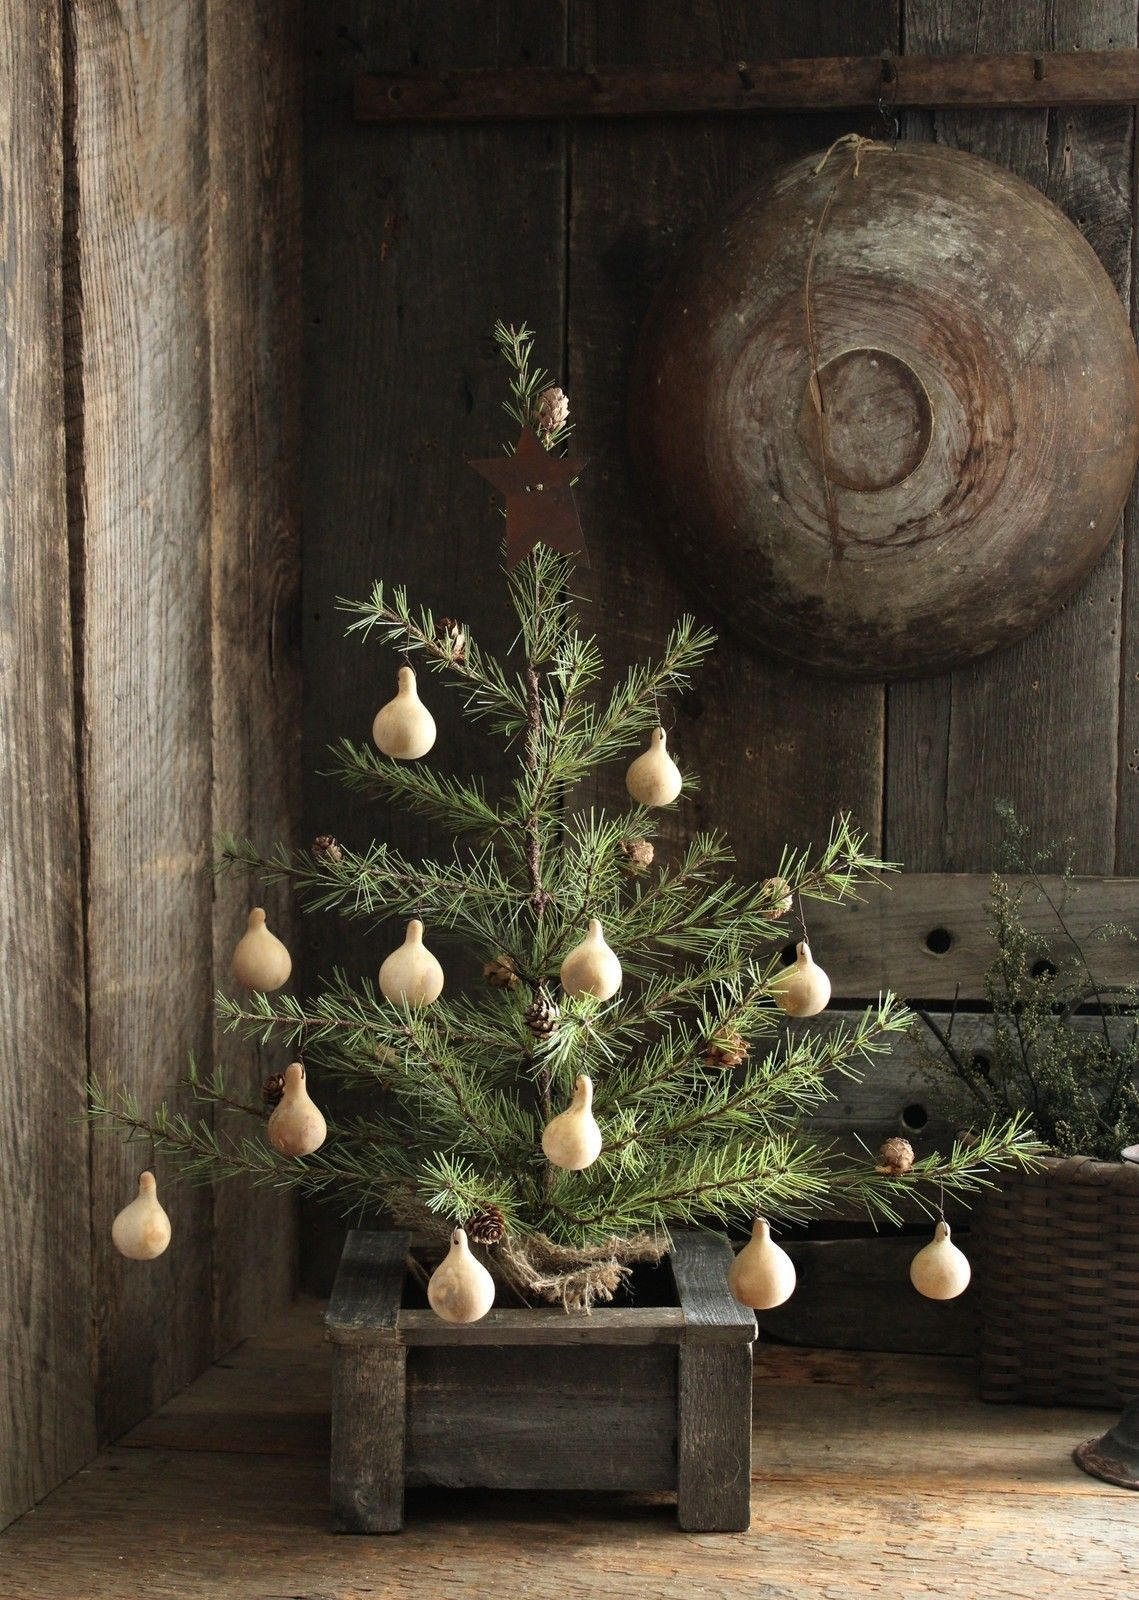 Decorated With Pine Cones And 12 Dried Spinner Gourd Ornies With